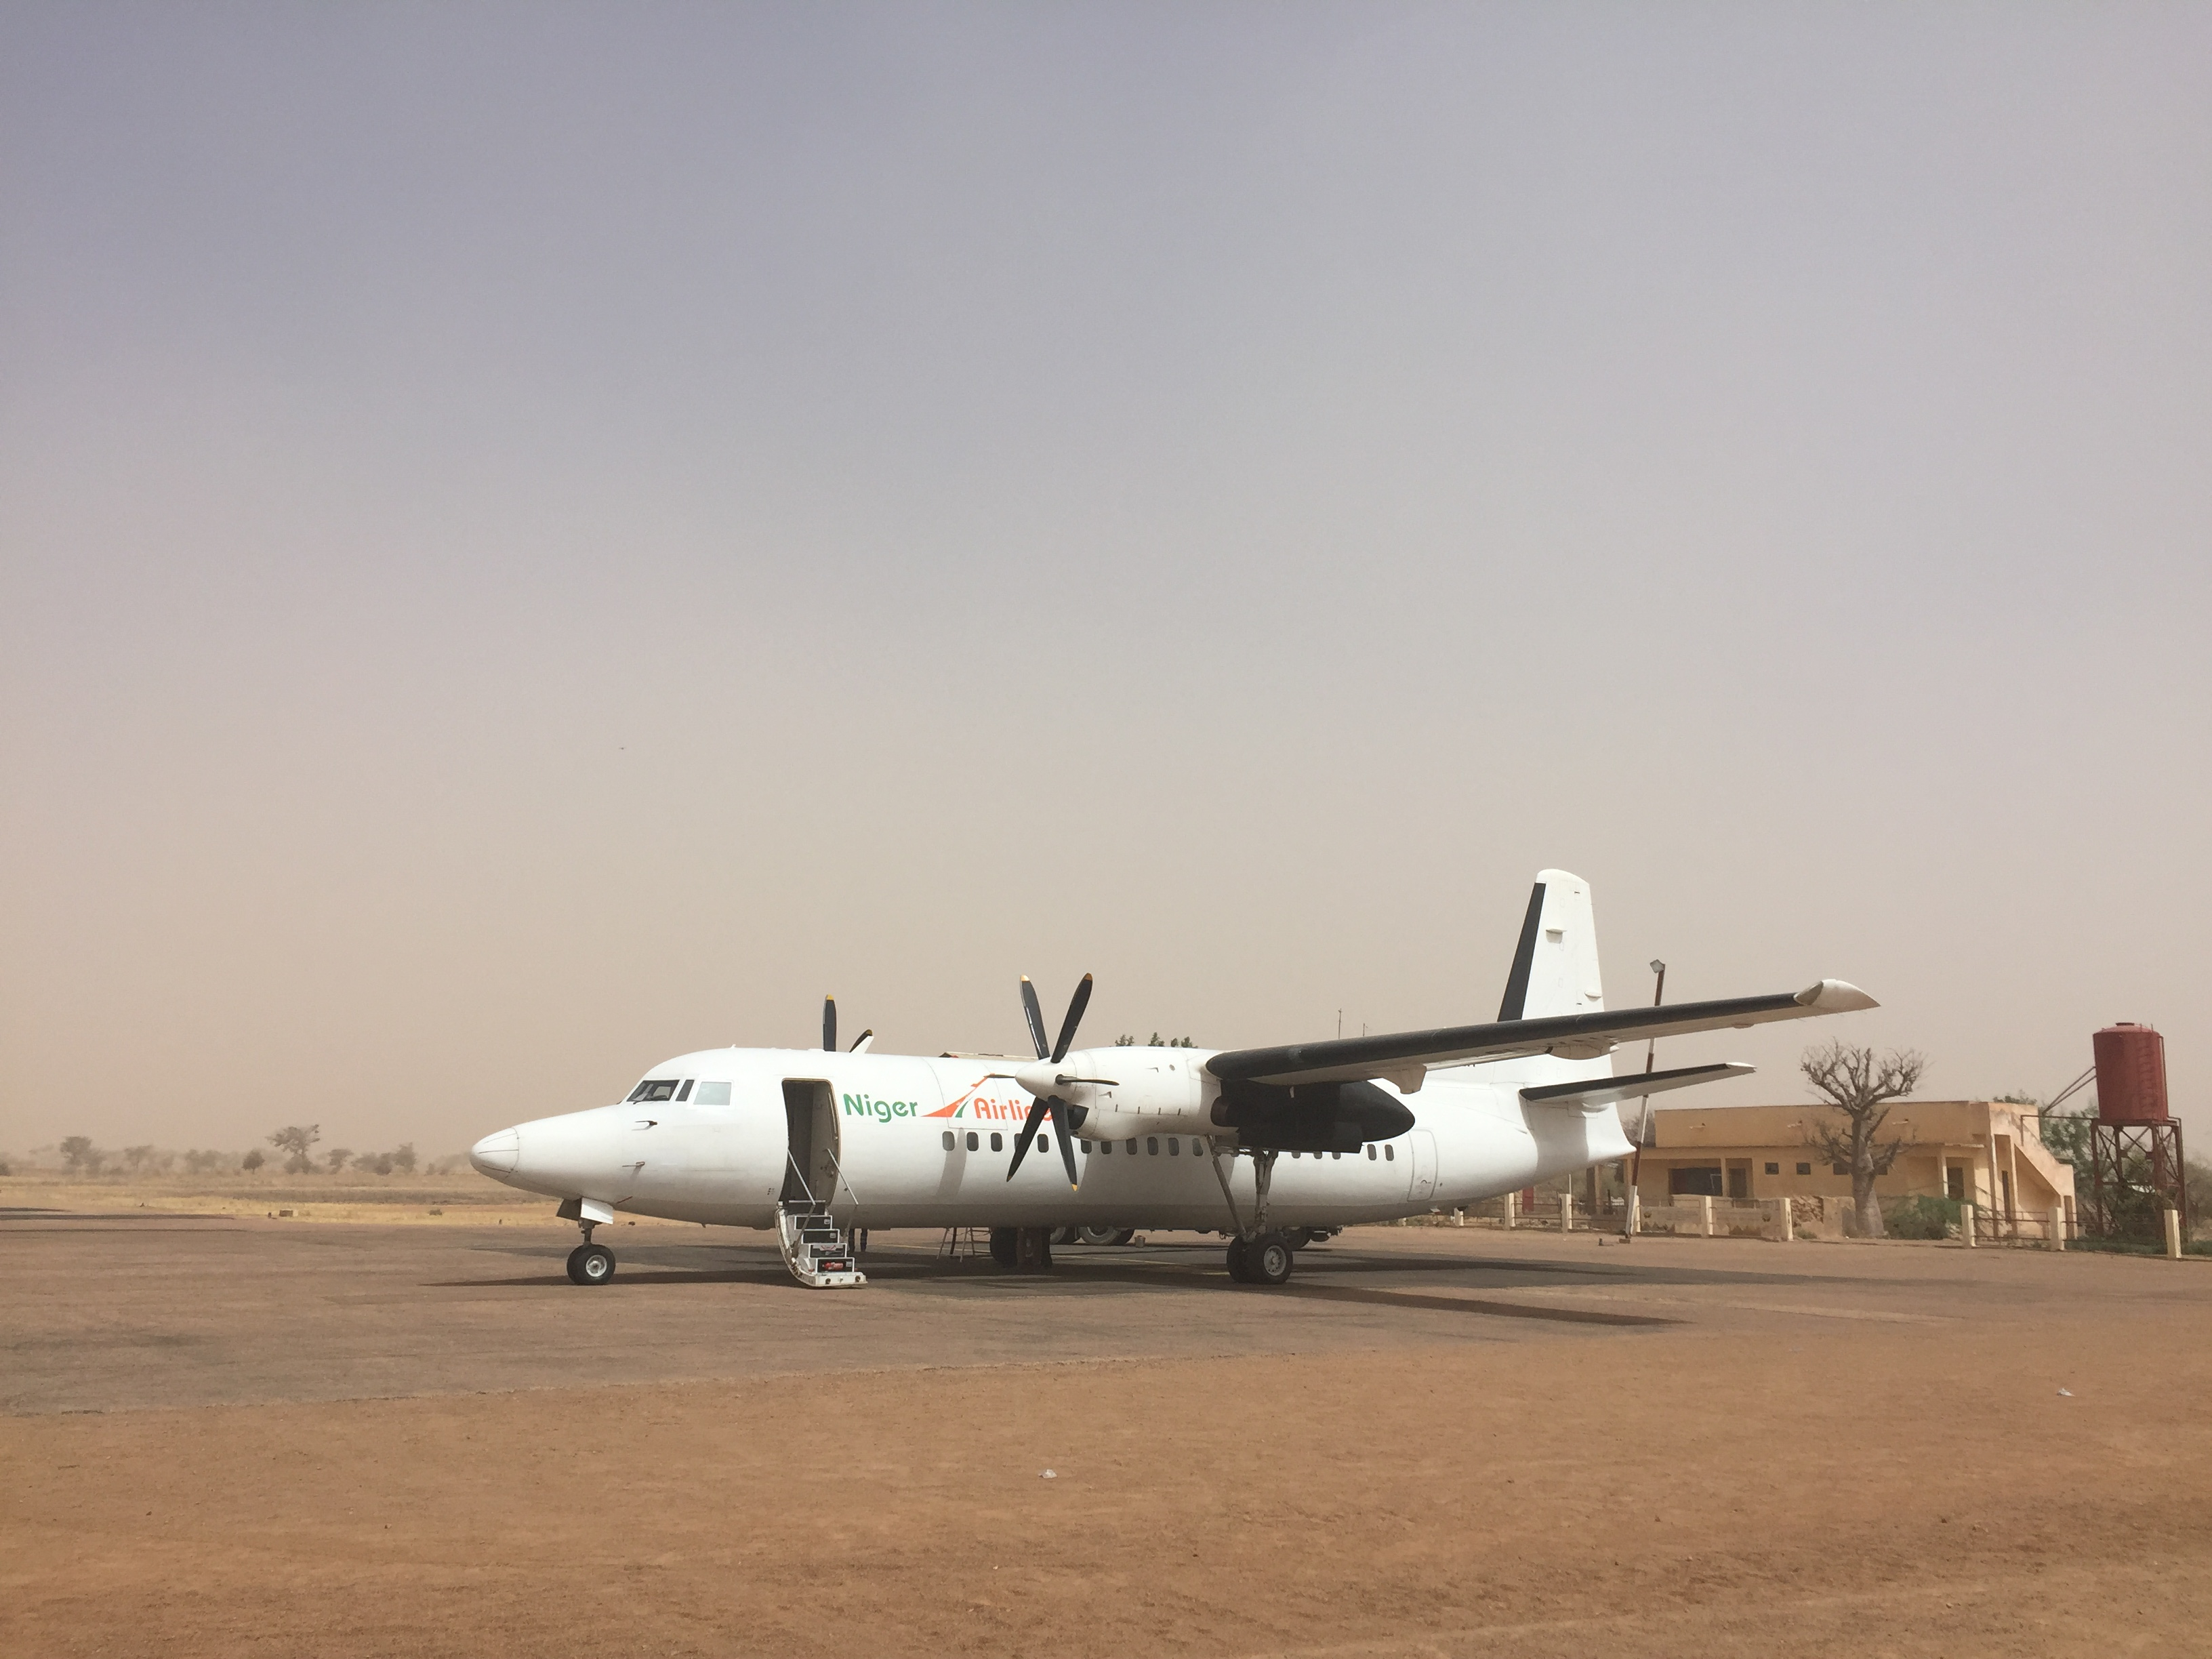 Kabir boarded a 30-year-old Fokker 50 propeller plane in Niamey with the goal of reaching Maradi in the agricultural belt of Niger. Dust storms thwarted this plan.